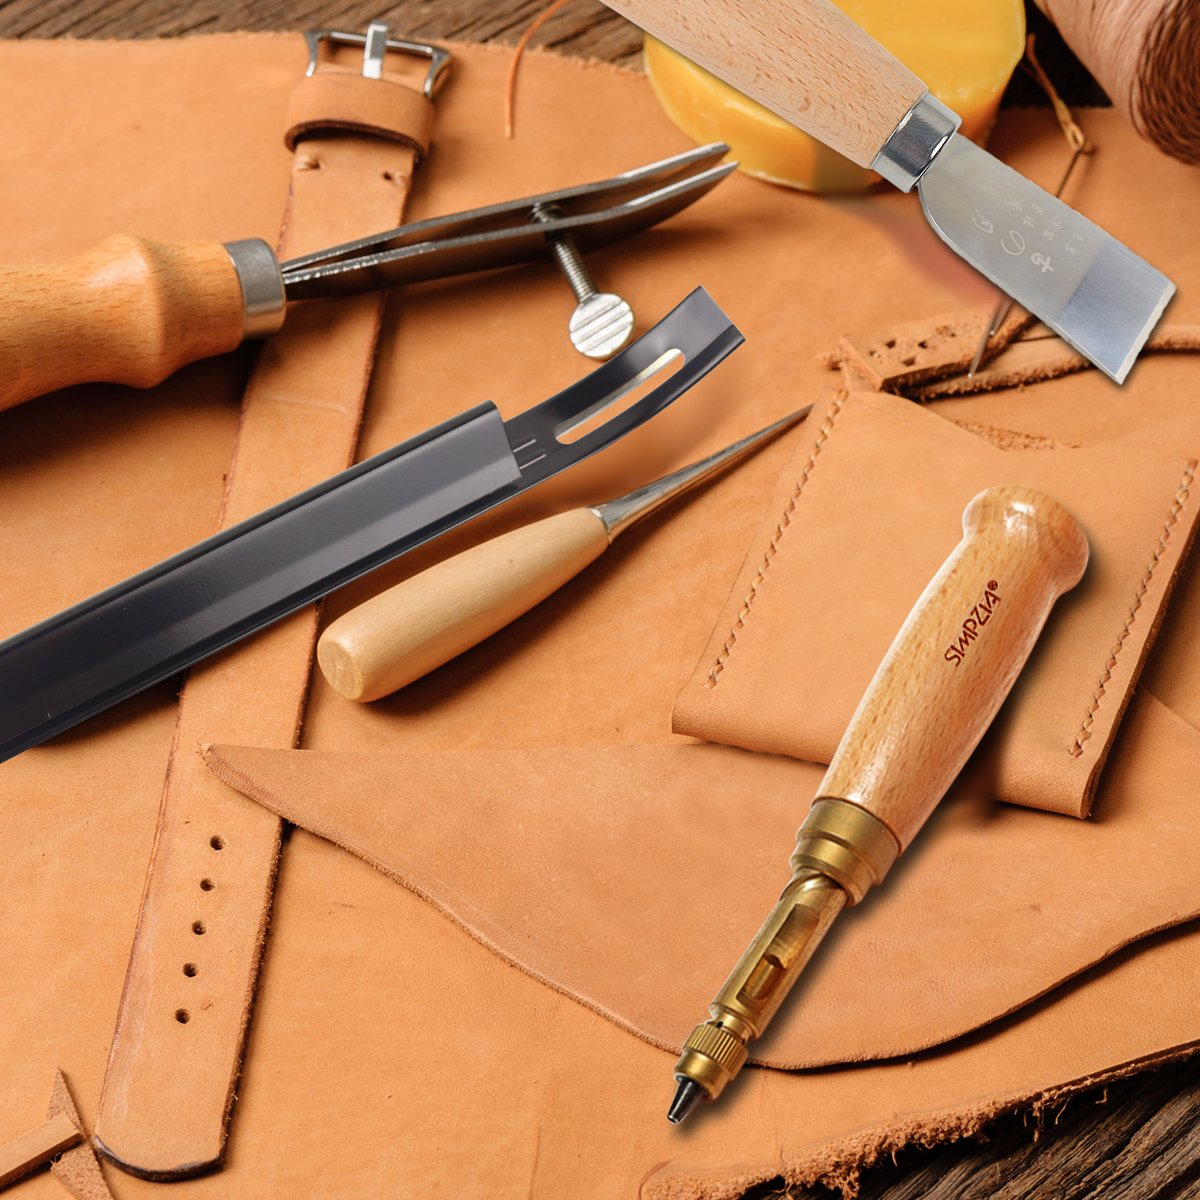 Leather Craft Tool SIMPZIA 31 PCS Leather Sewing Tools Kit Leather DIY Hand Stitching Tools with Groover Awl Edge Creaser for Sewing Leather Canvas,Be Careful of Sharp Edges Keep Way from Kids